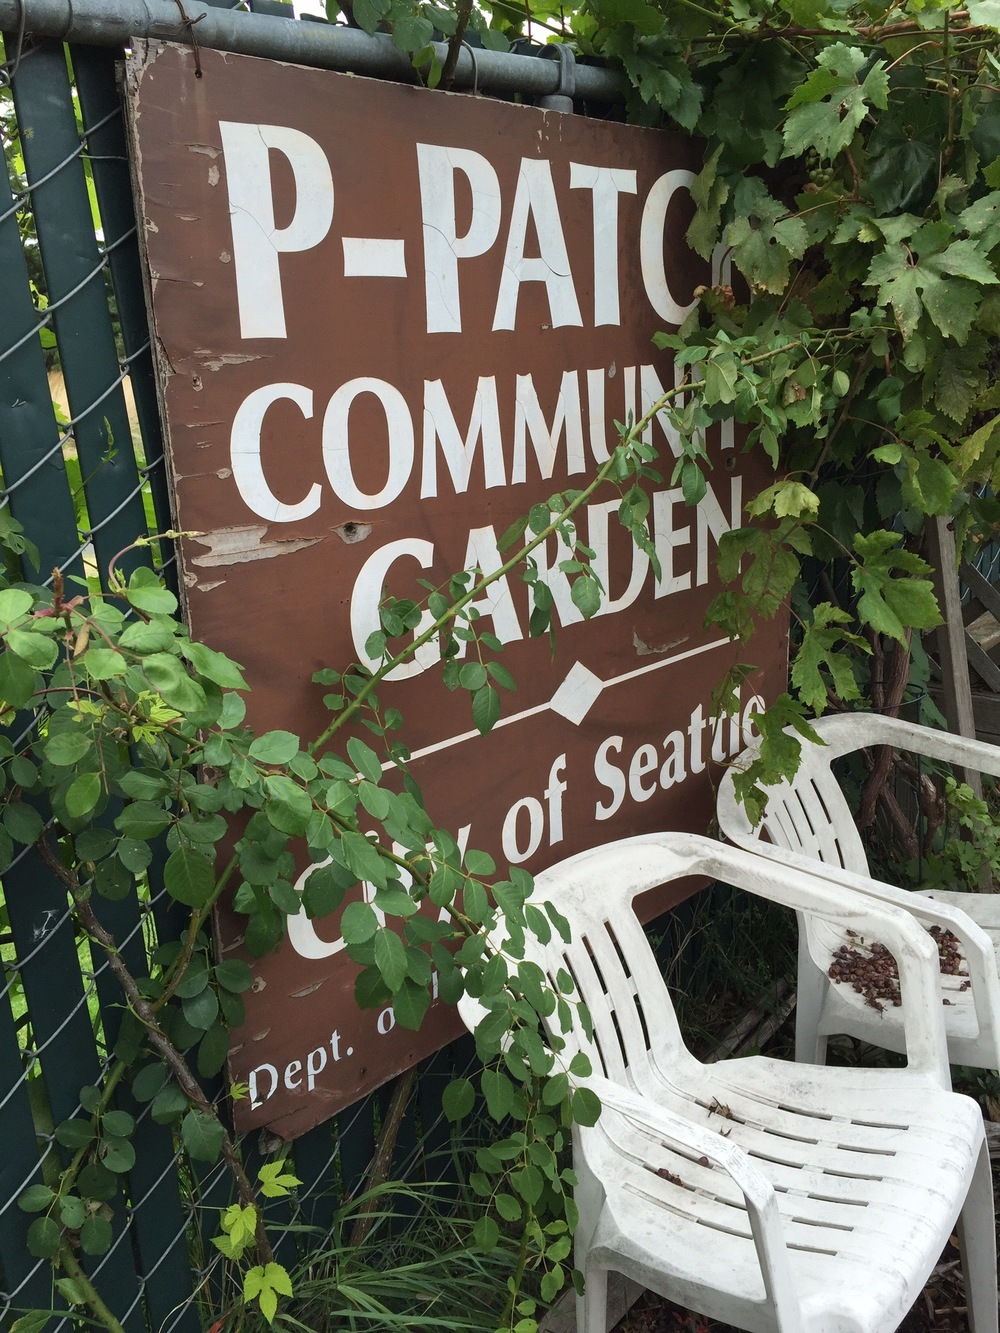 Falling in love with community gardens